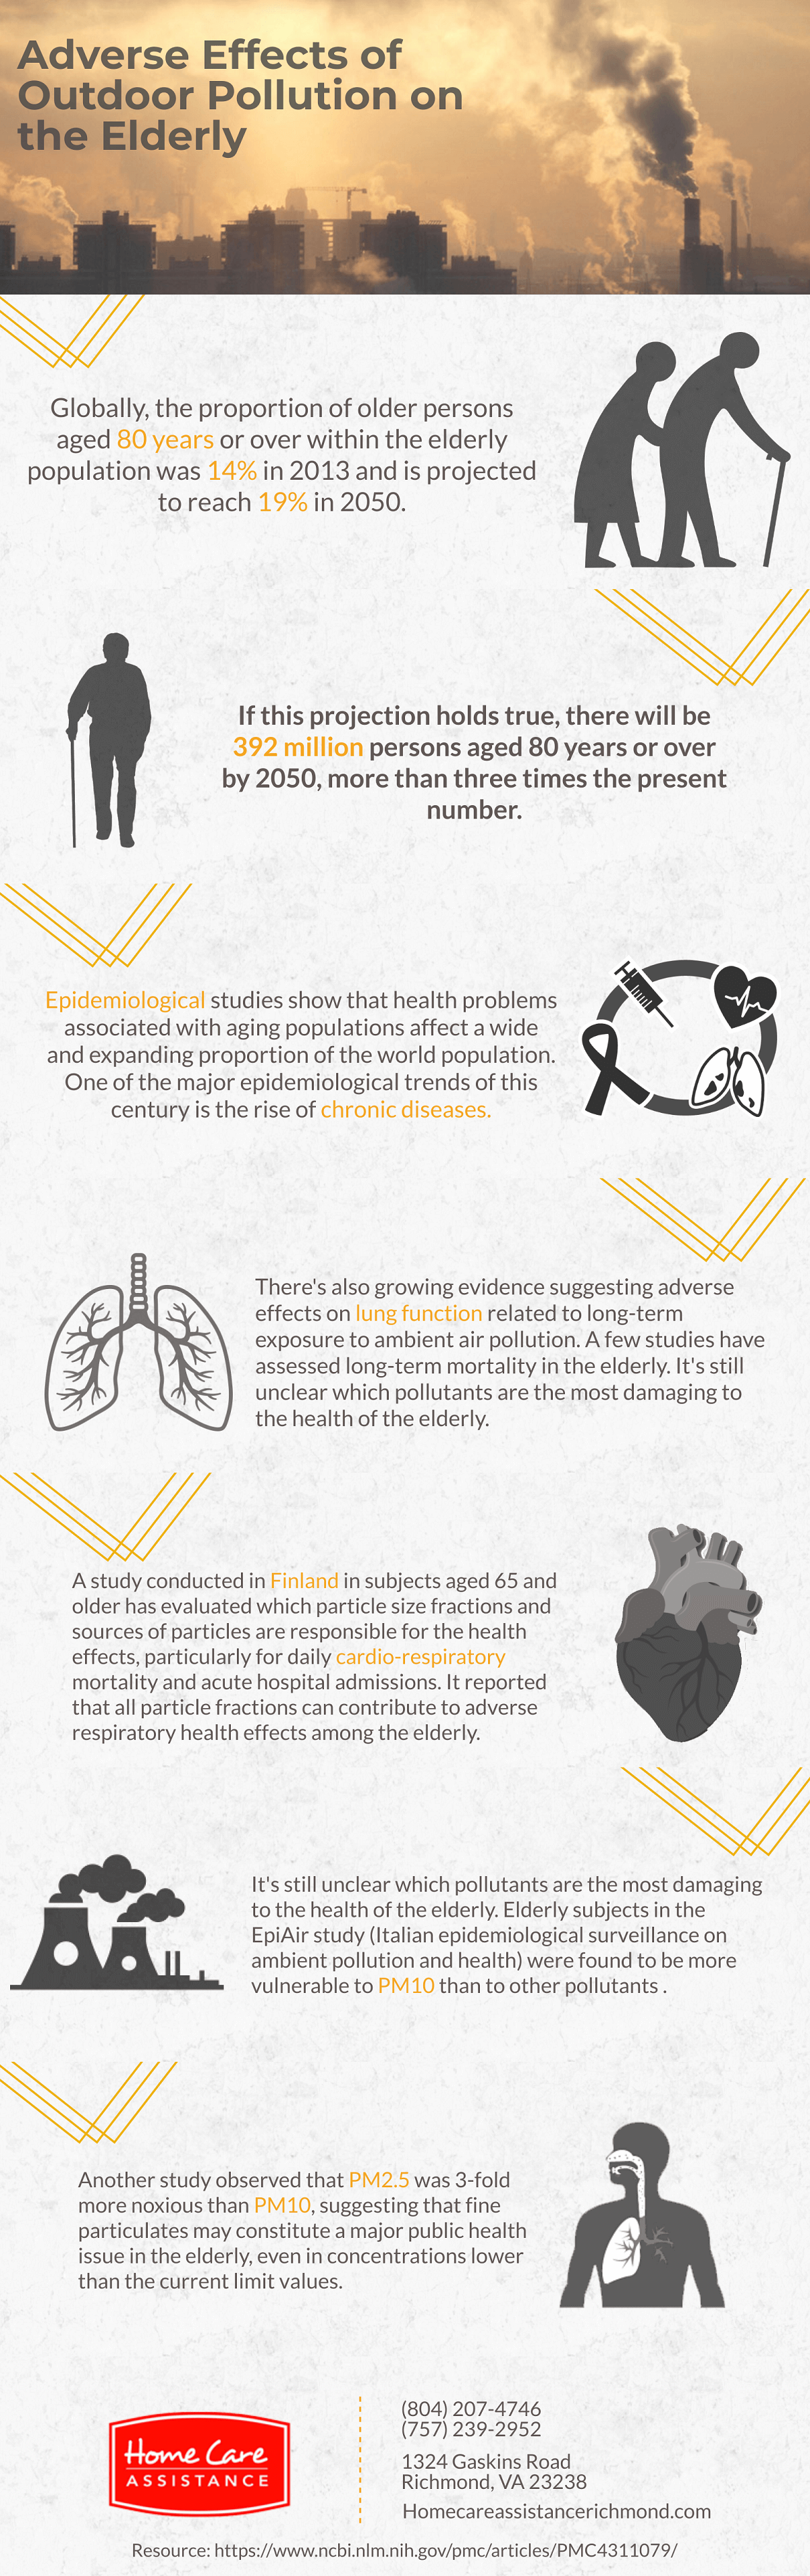 What Are the Adverse Effects of Pollution on Seniors? [Infographic]